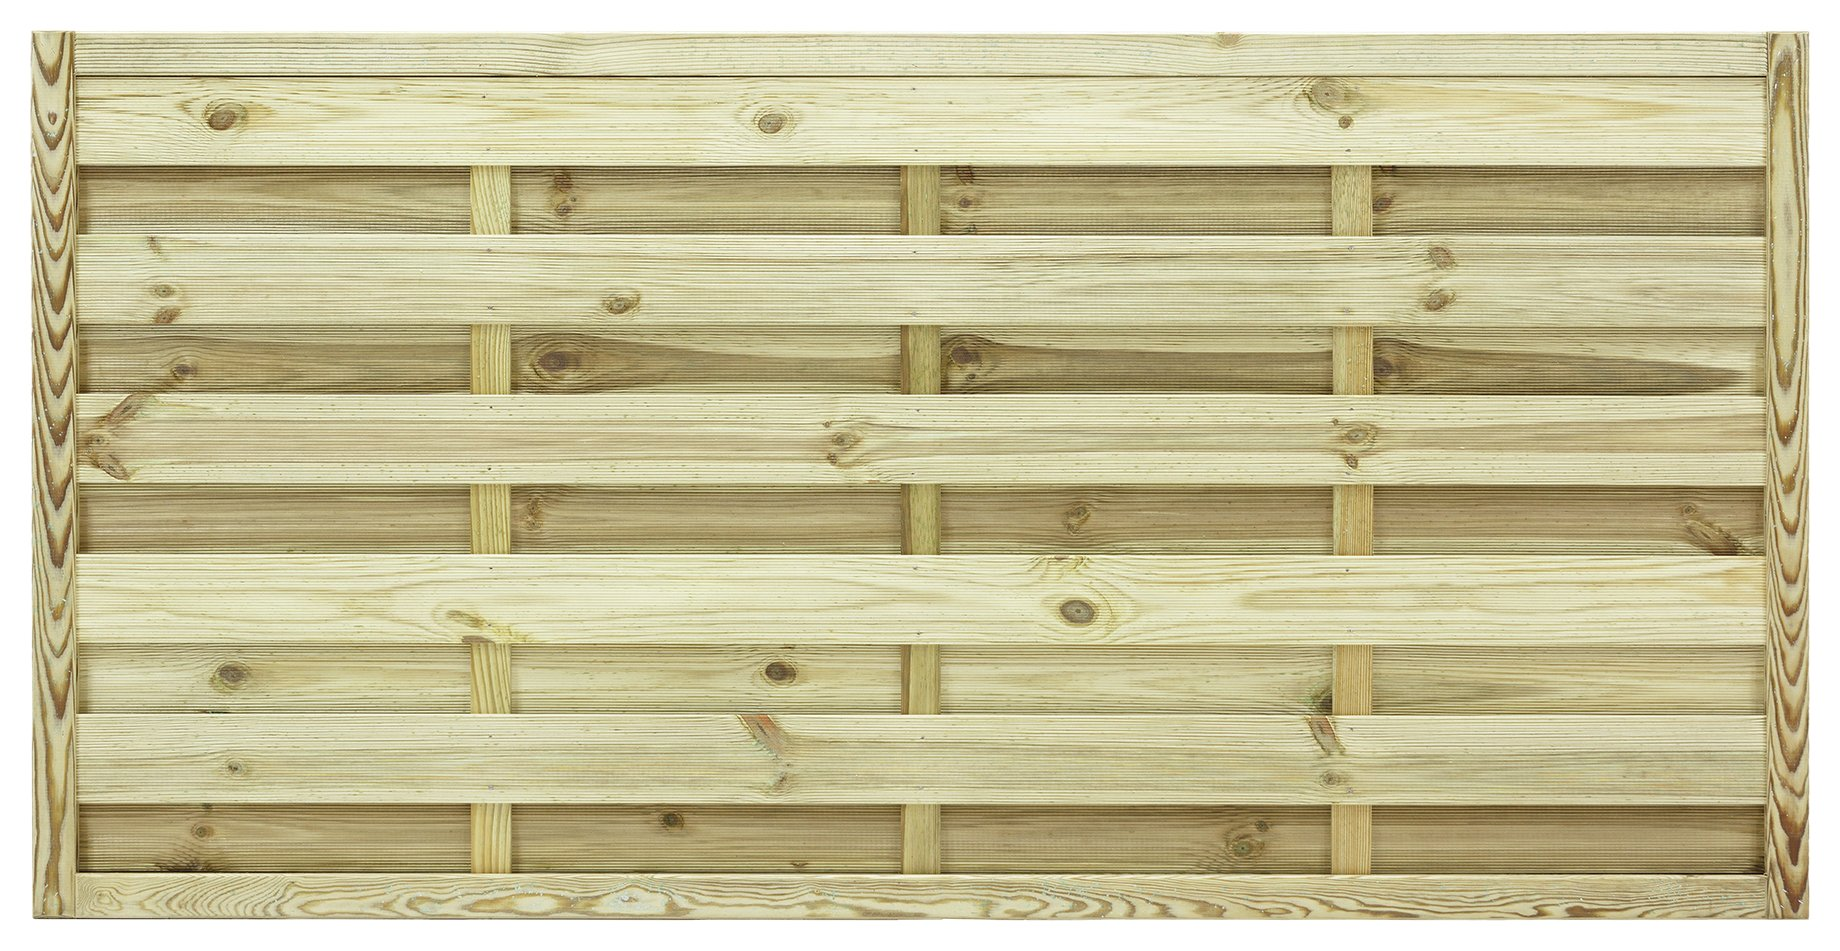 Image of Grange 0.9m St Espirit Square Fence Panel - Pack of 3.